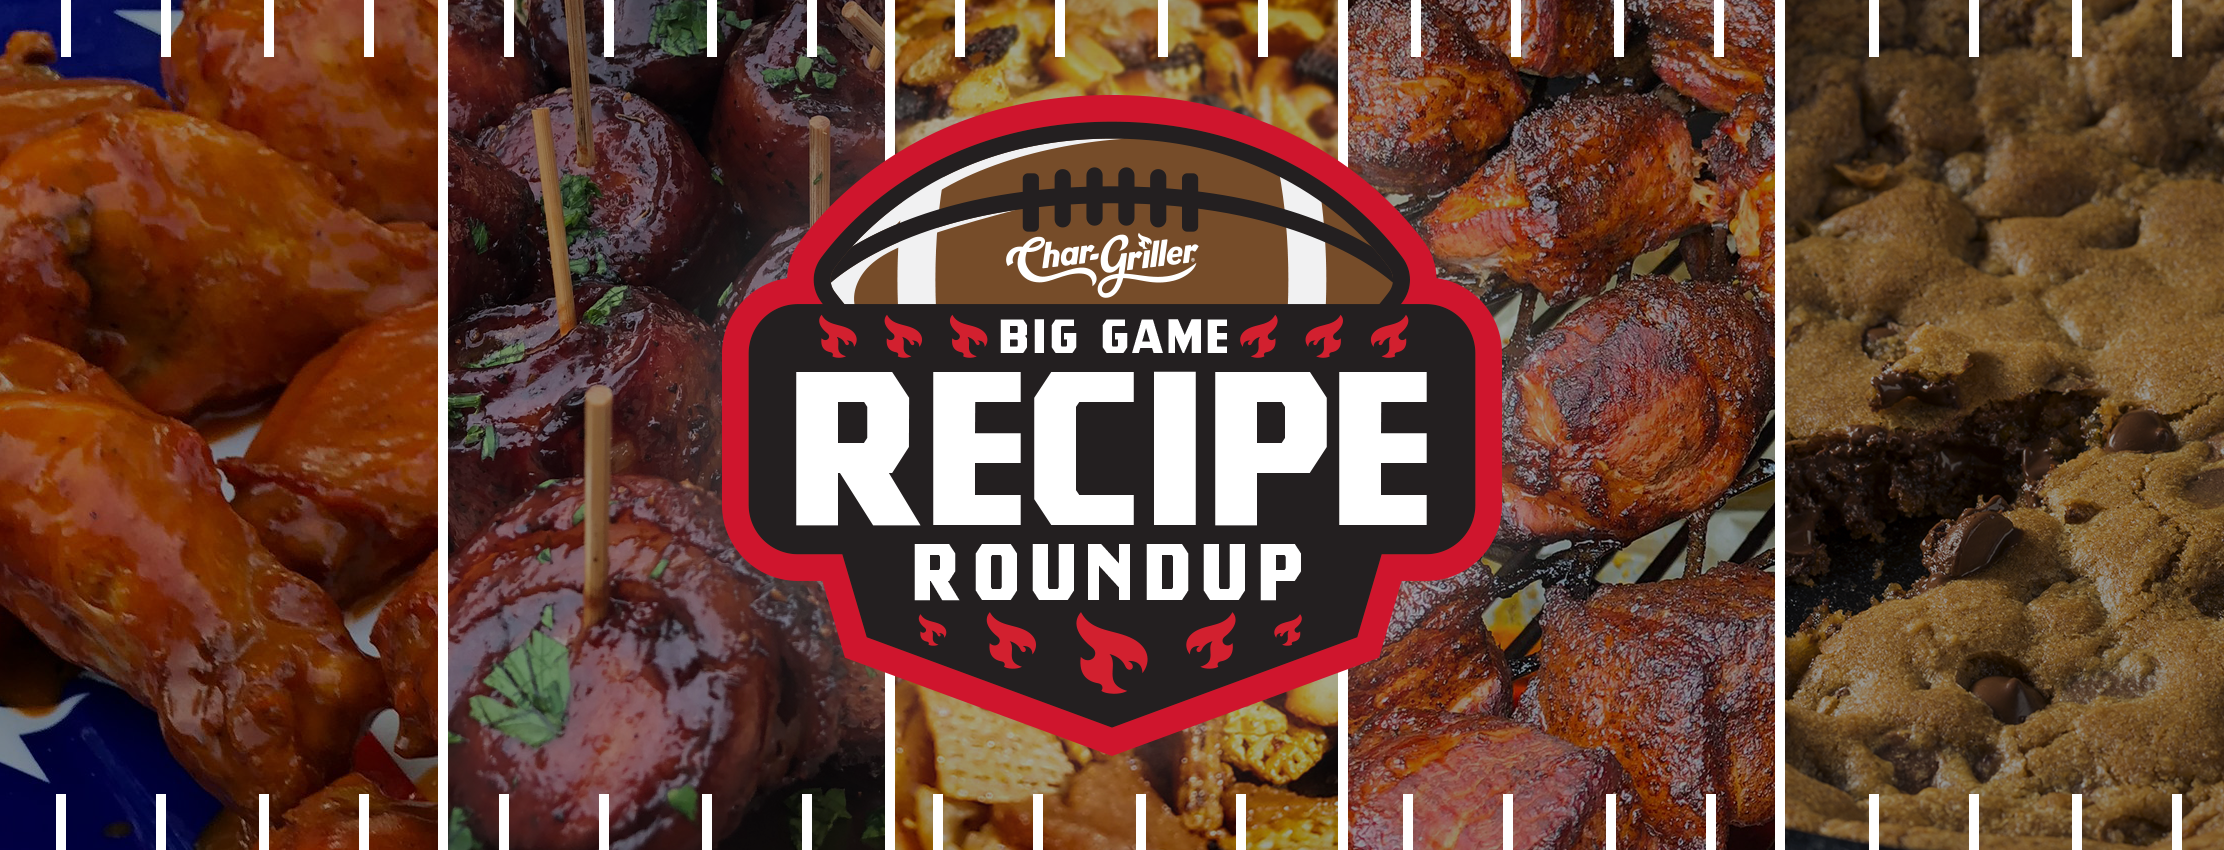 Big Game Recipe Round Up